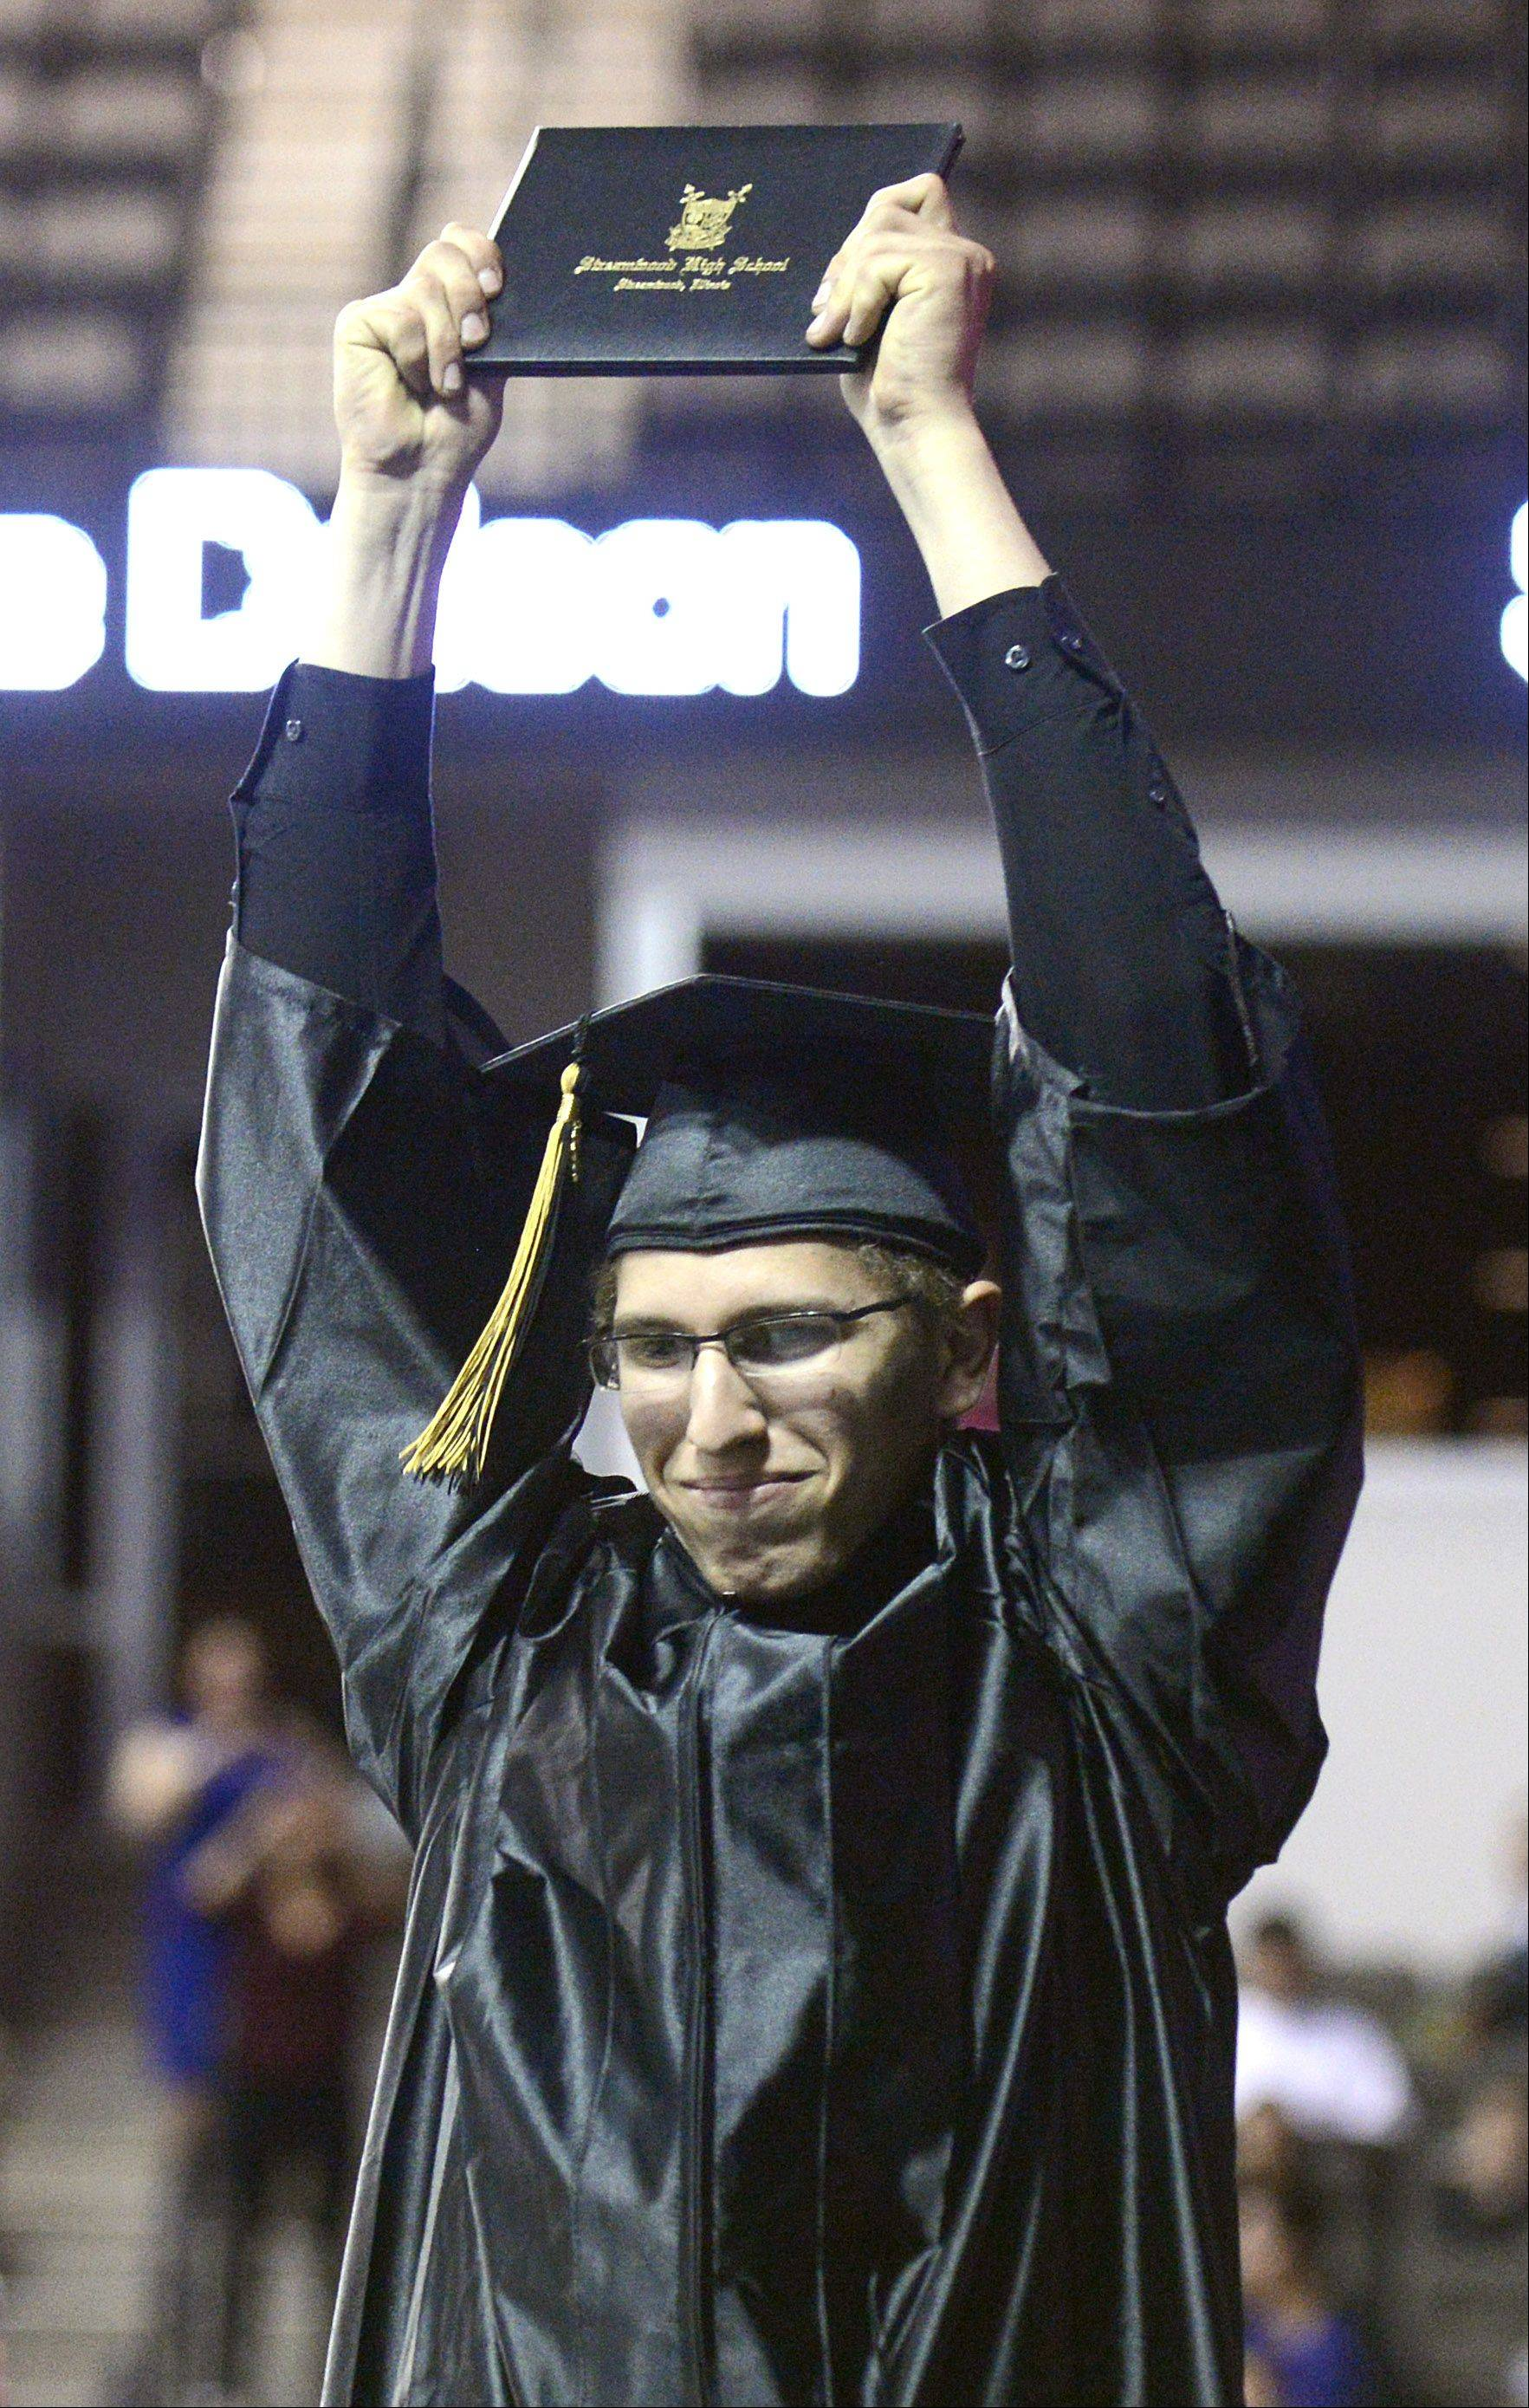 Harlen Christensen shows off his diploma at Streamwood High School's commencement ceremony at the Sears Centre in Hoffman Estates on Saturday, May 25.